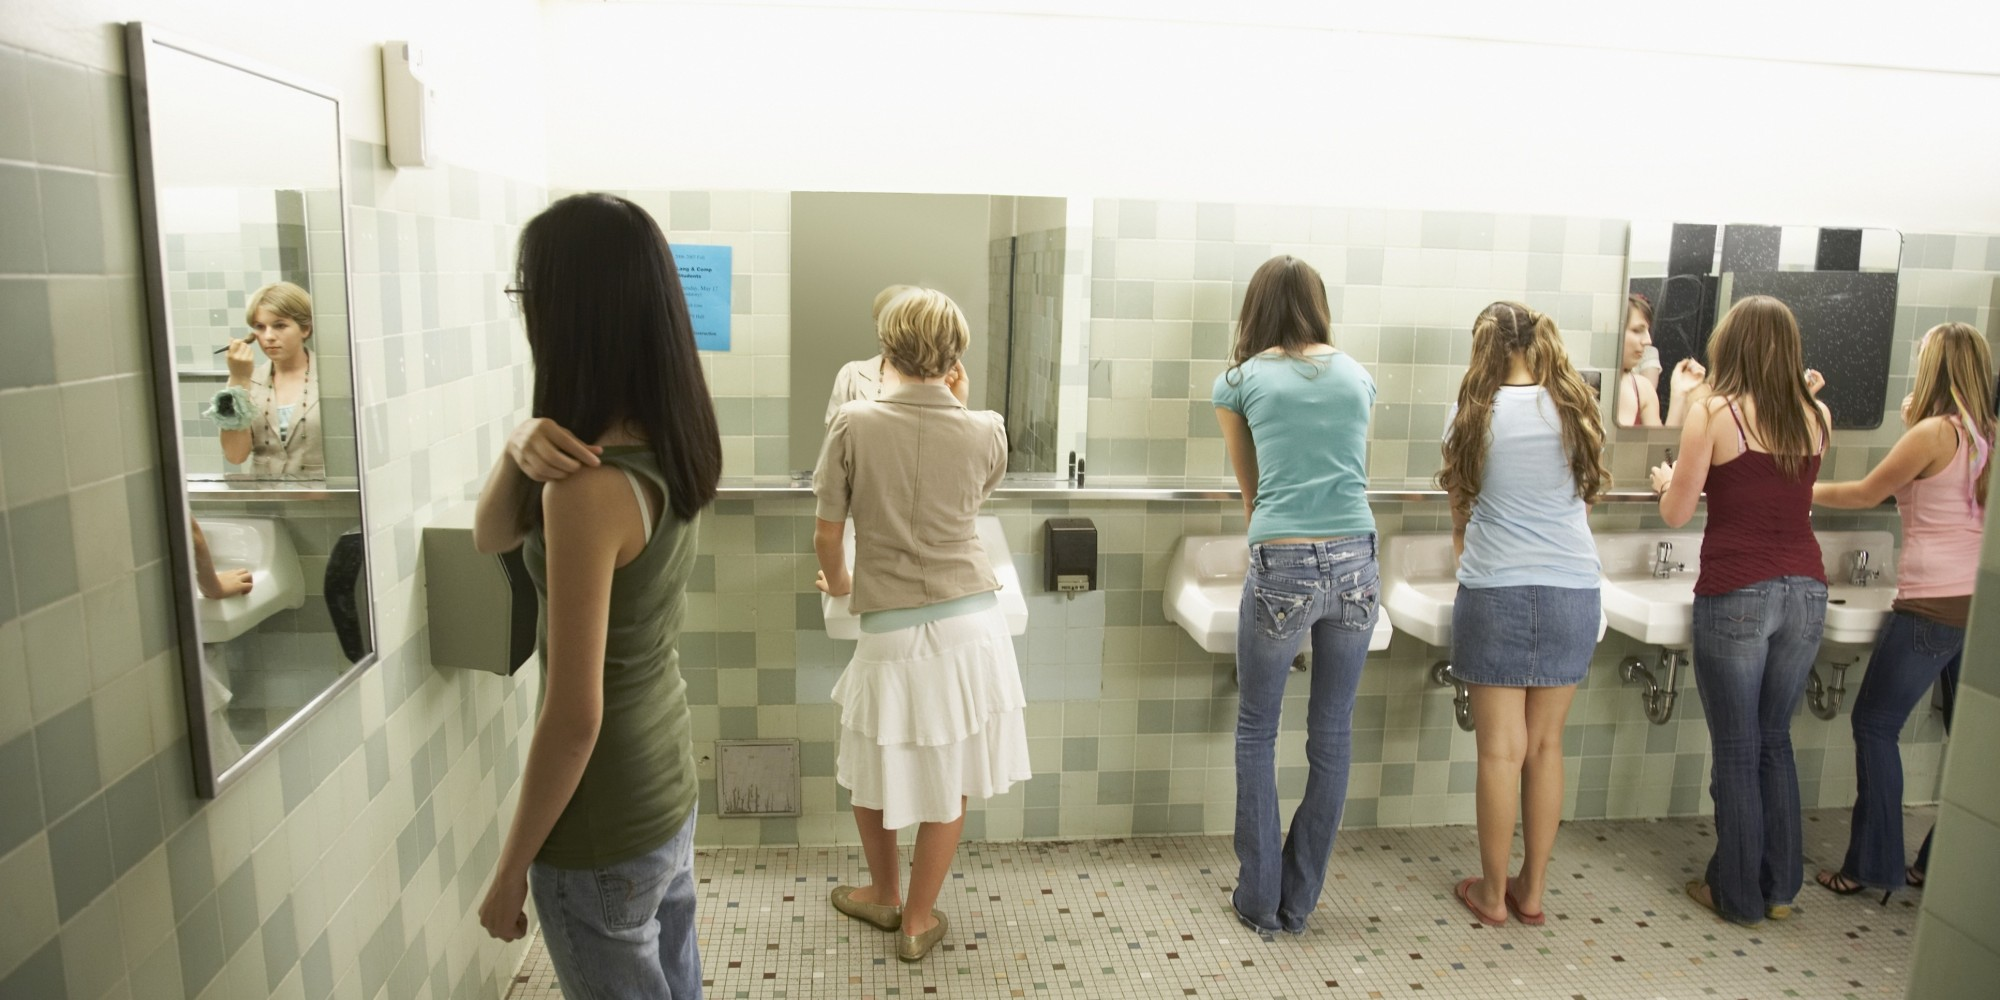 Image result for girl's in rest room